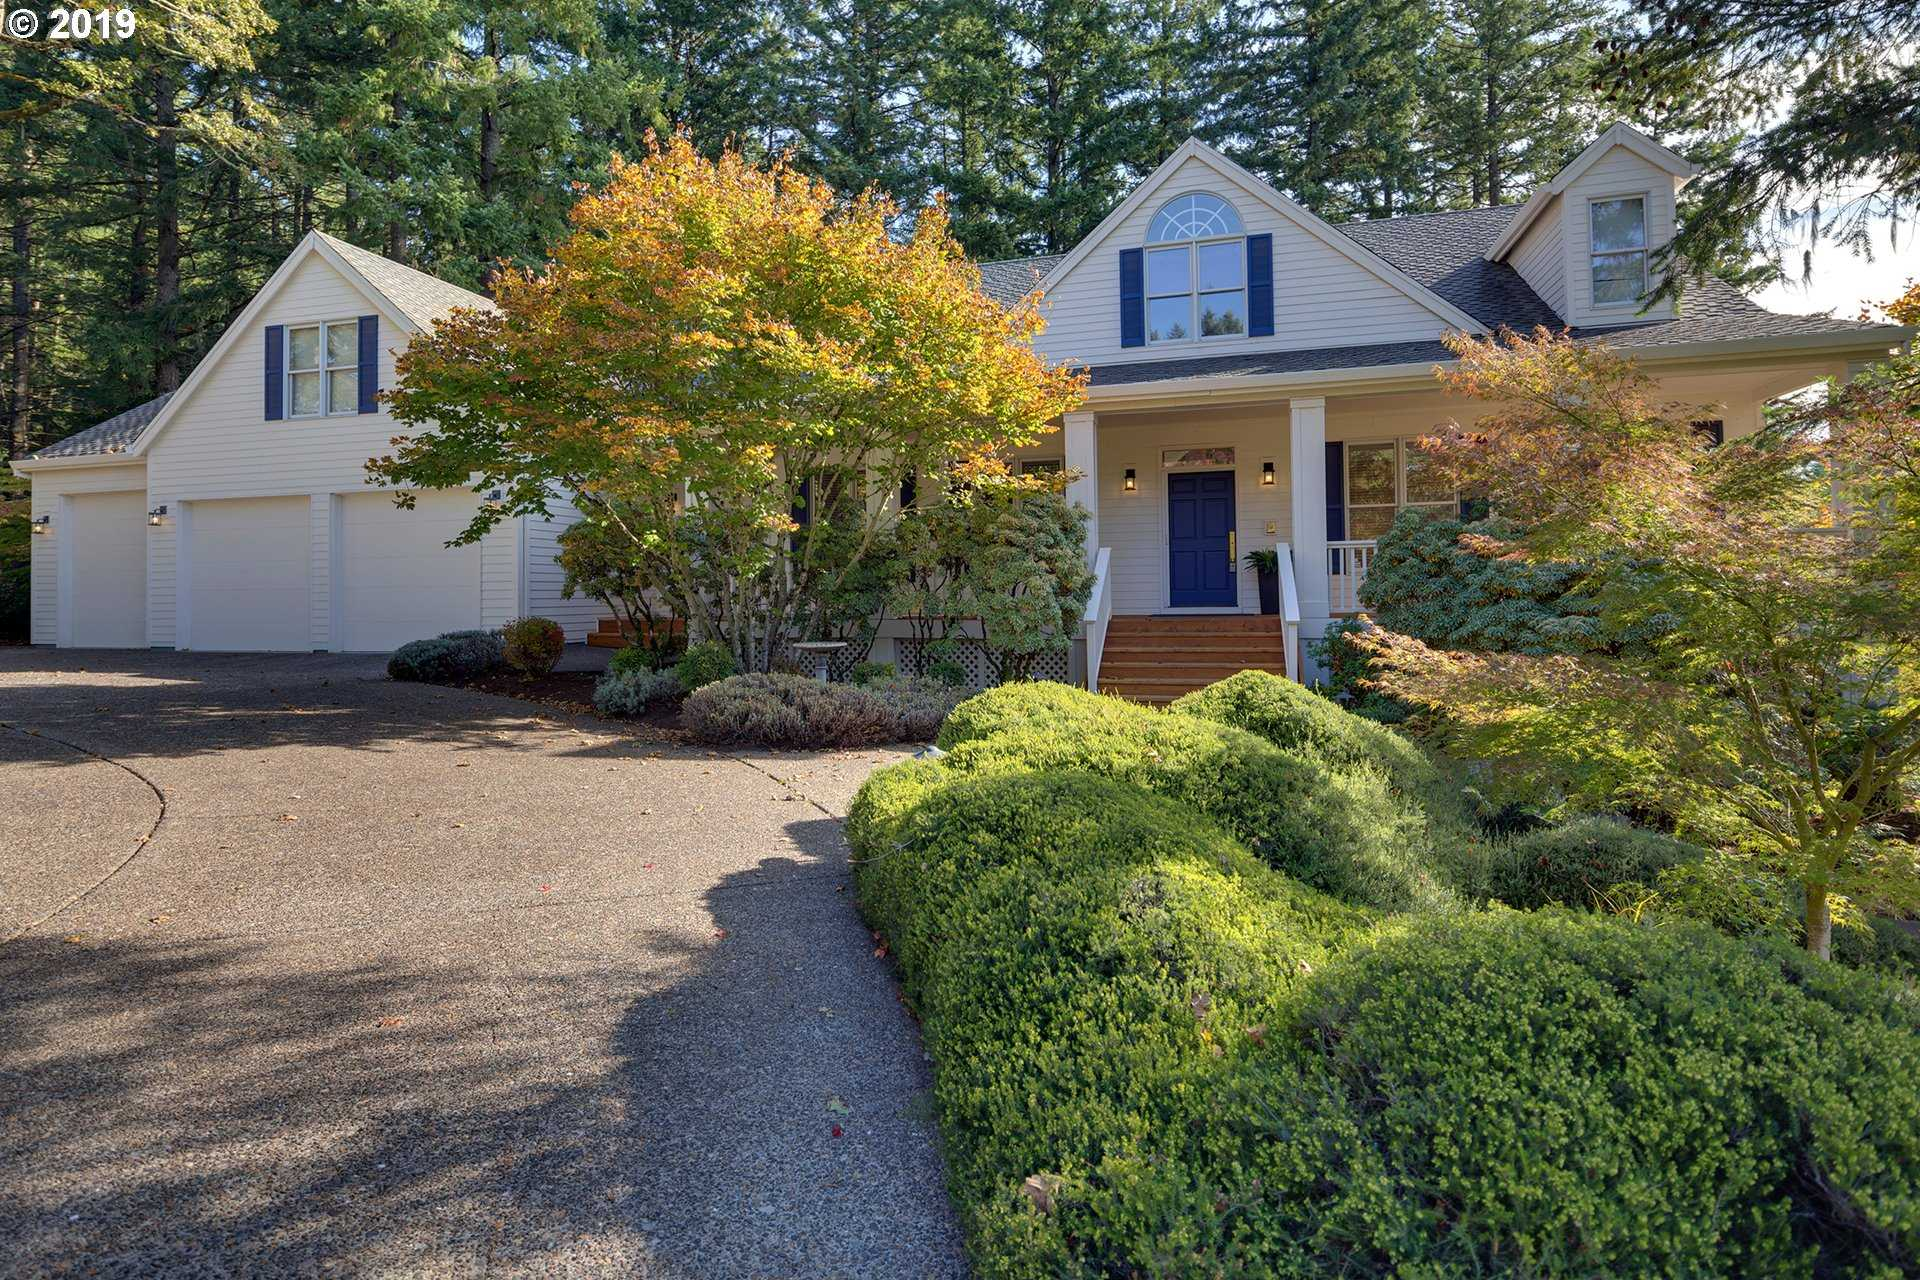 $1,275,000 - 4Br/5Ba -  for Sale in Cooper Mountain Area, Beaverton